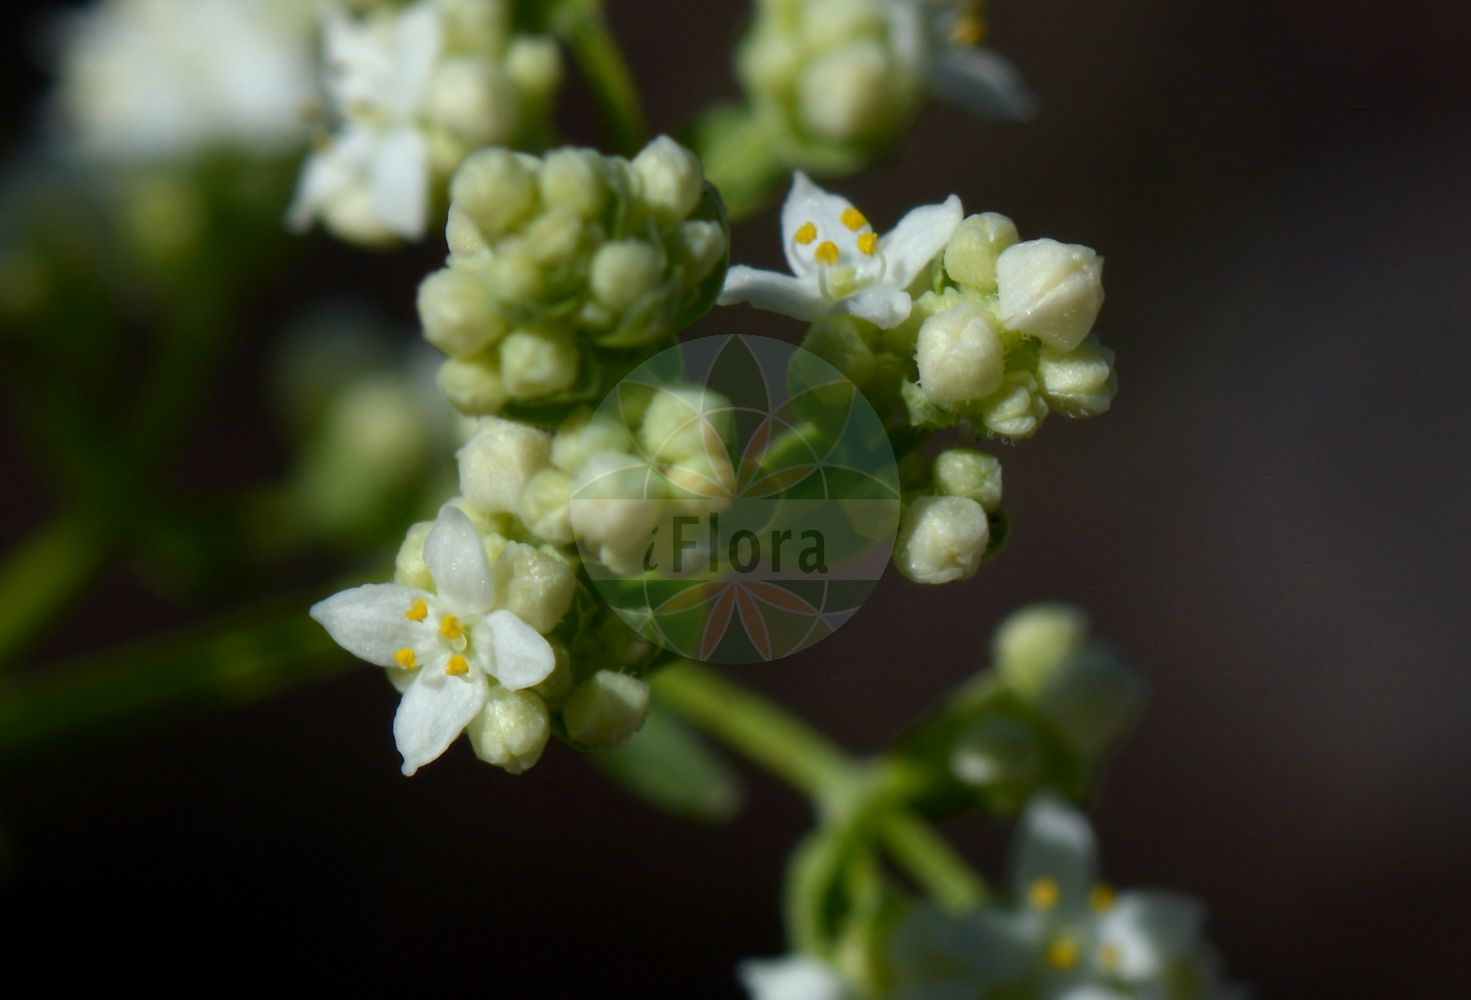 Foto von Galium boreale (Nordisches Labkraut - Northern Bedstraw). Das Bild zeigt Blatt und Bluete. Das Foto wurde in Kopenhagen, Daenemark aufgenommen. ---- Photo of Galium boreale (Nordisches Labkraut - Northern Bedstraw).The image is showing leaf and flower.The picture was taken in Copenhagen, Denmark.(Galium boreale,Nordisches Labkraut,Northern Bedstraw,Galium hyssopifolium,Galium septentrionale,Cross-leaved Bedstraw,Galium,Labkraut,Bedstraw,Rubiaceae,Roetegewaechse;Kaffeegewaechse;Krappgewaechse;Labkrautgewaechse,Bedstraw family,Blatt,Bluete,leaf,flower)